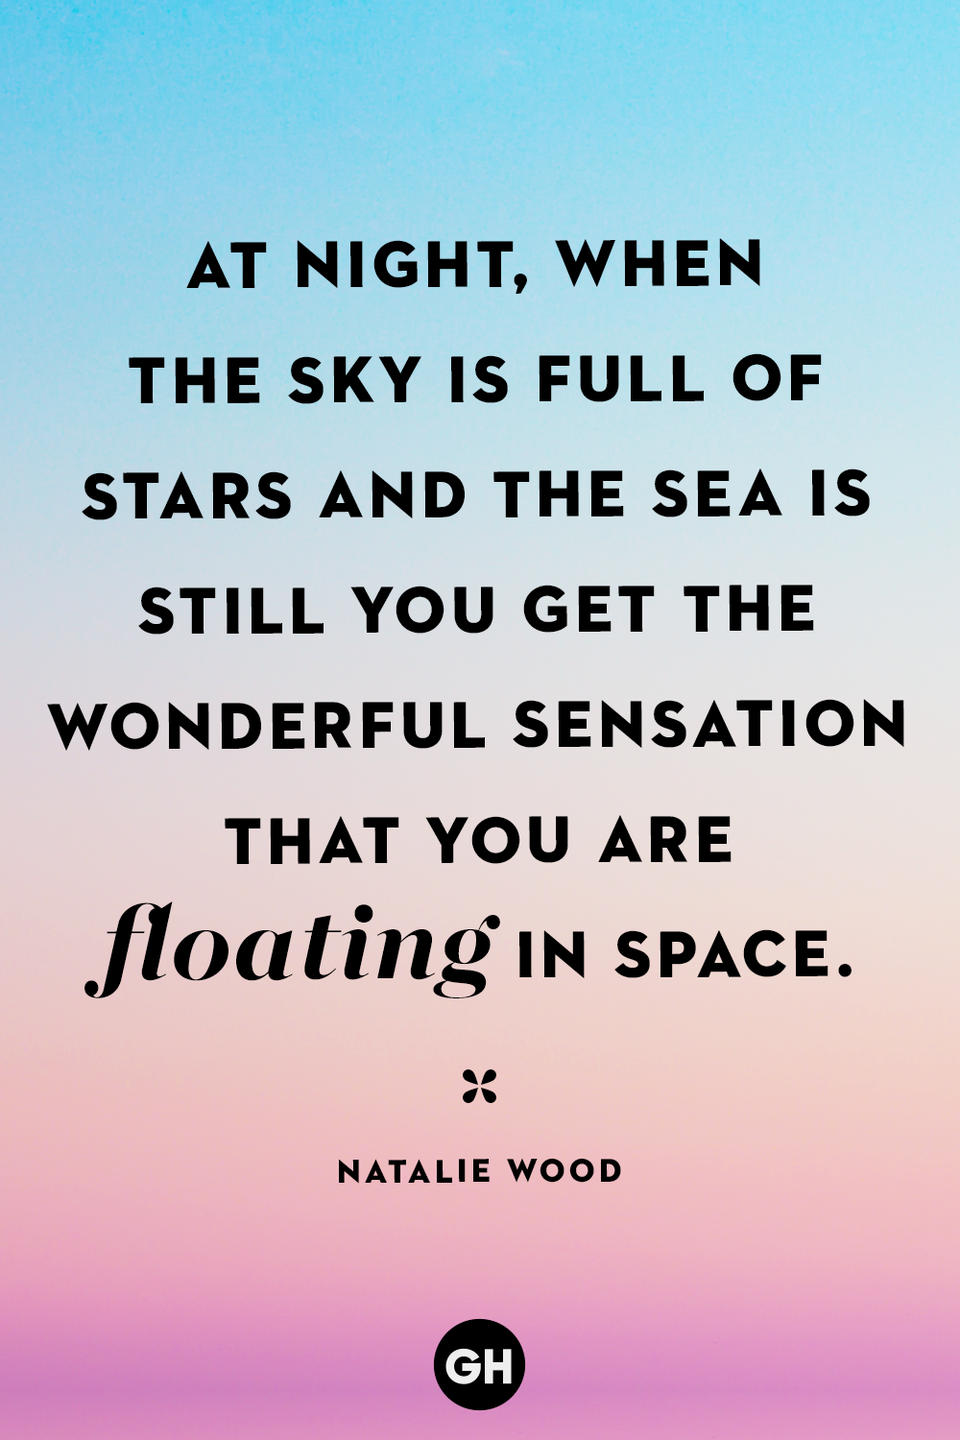 <p>At night, when the sky is full of stars and the sea is still you get the wonderful sensation that you are floating in space.</p>